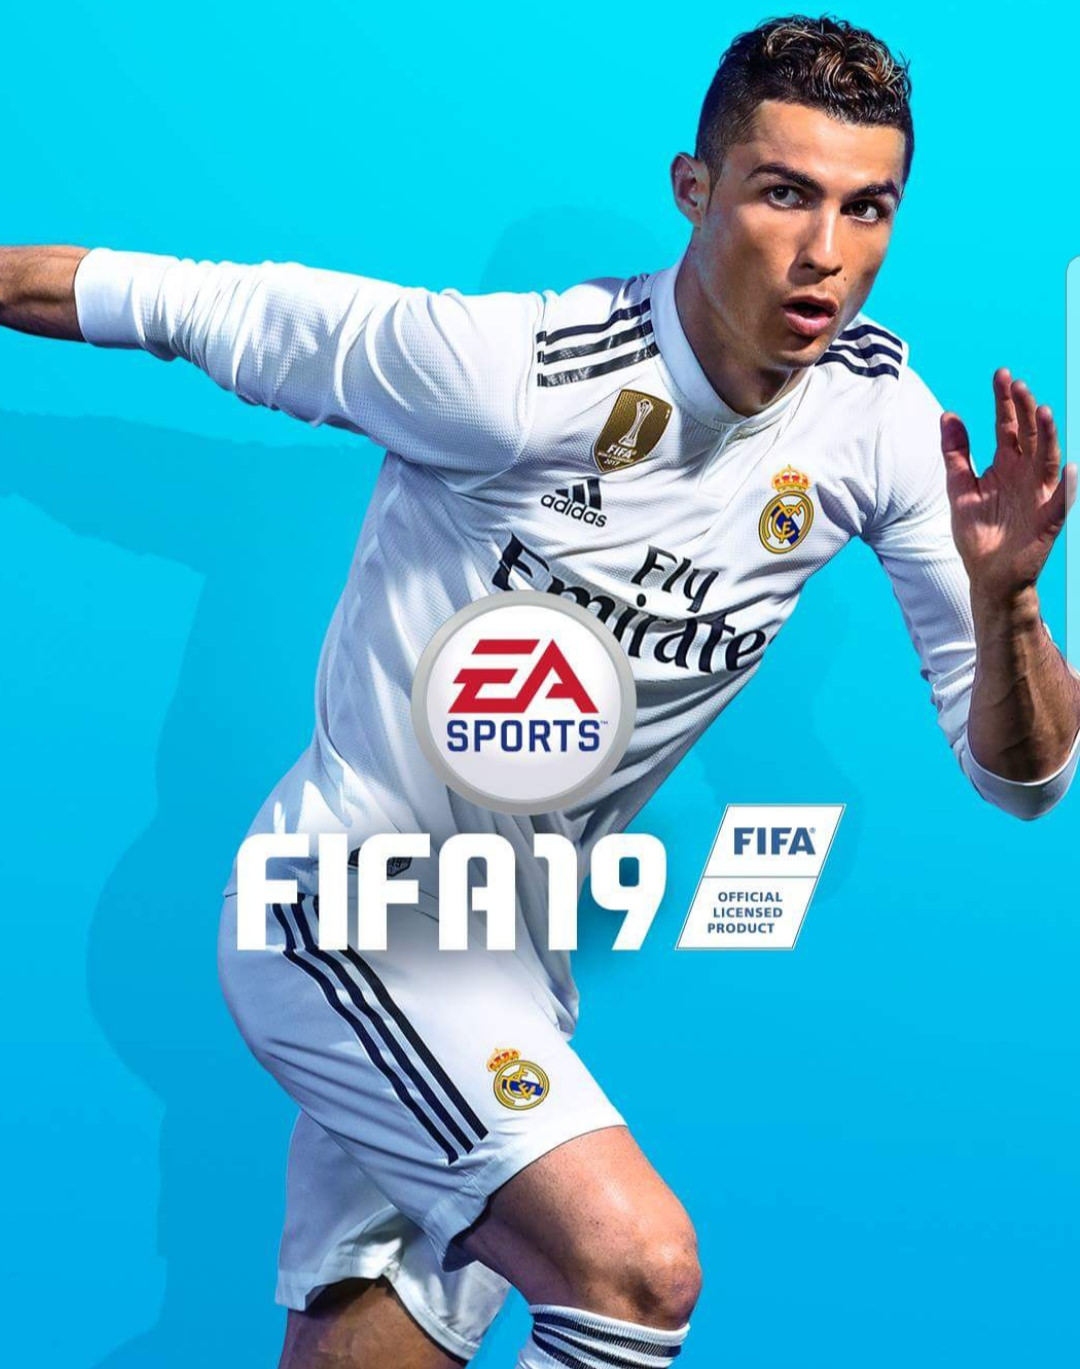 Federation Internationale de Football Association 19 On Nintendo Switch Has Online Friendlies